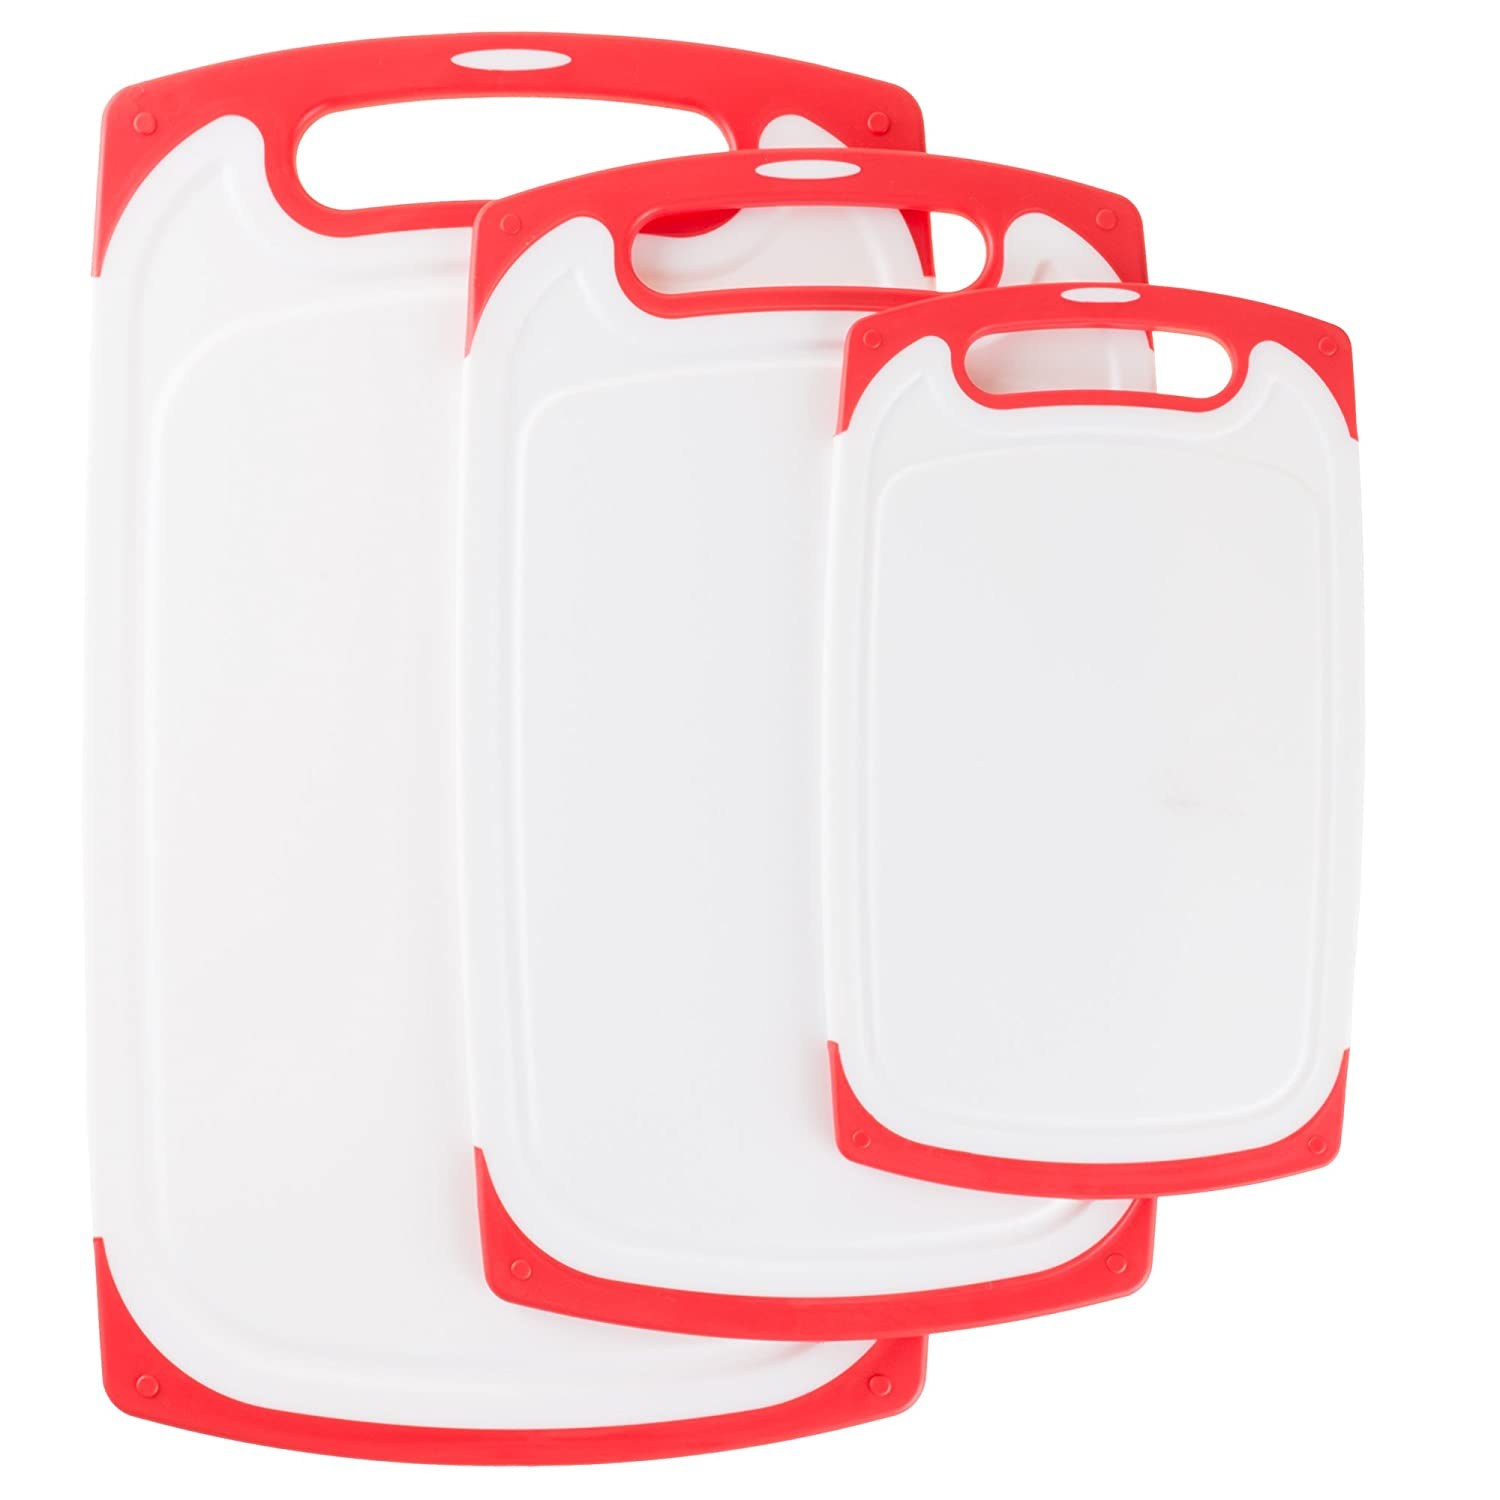 Normal Red Classic Cuisine 82-KIT1020 Cutting Board Set